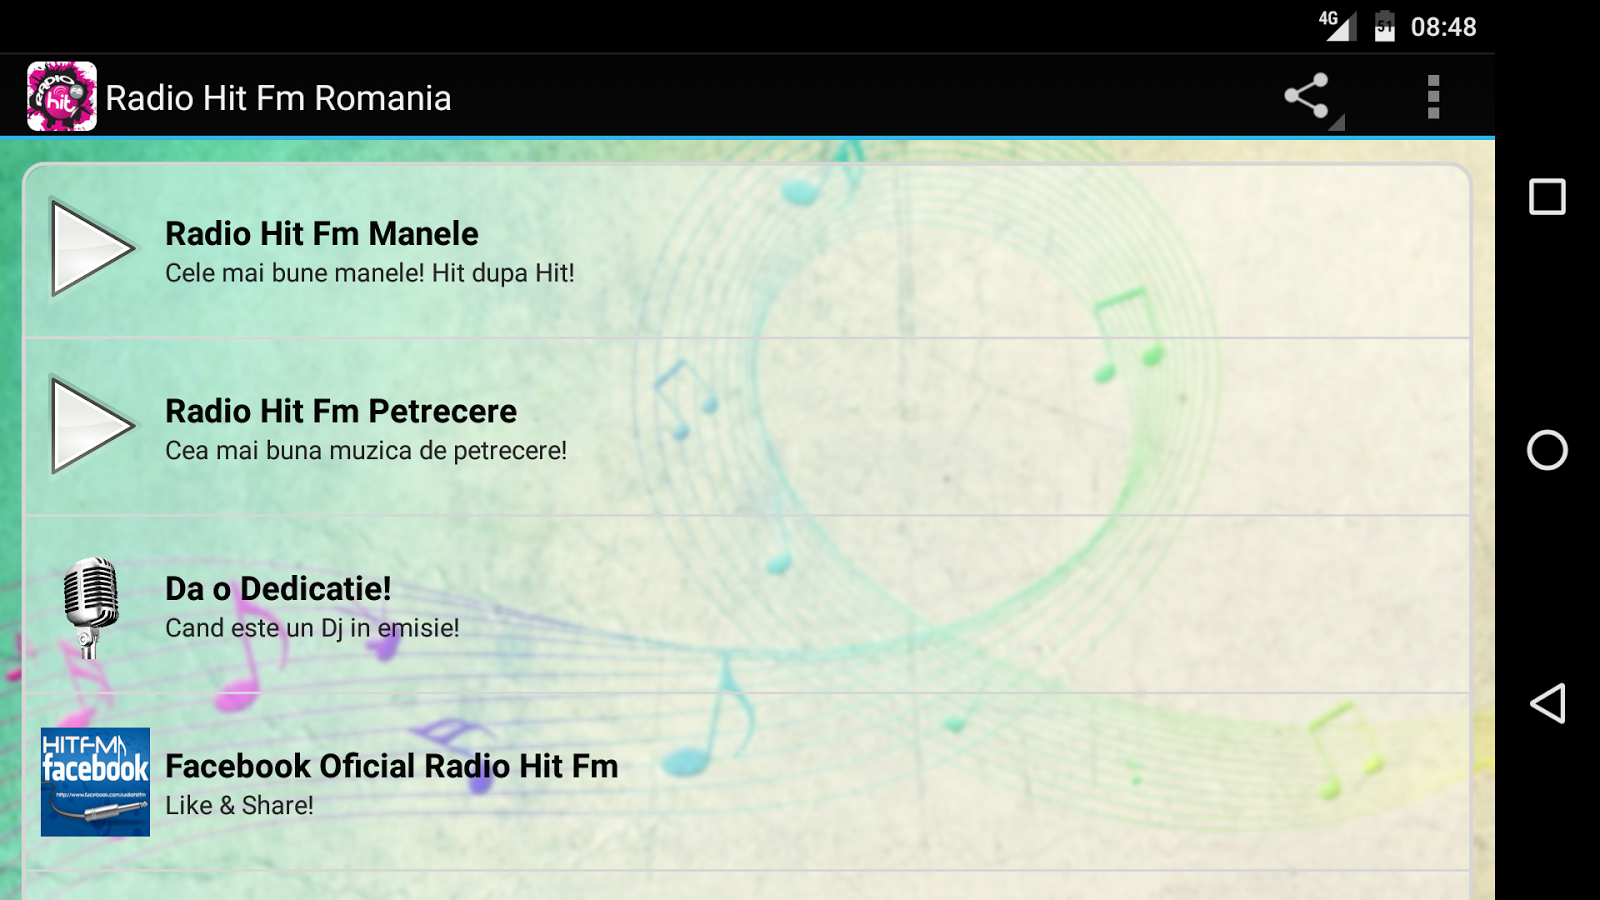 Radio Hit Fm Manele Romania- screenshot